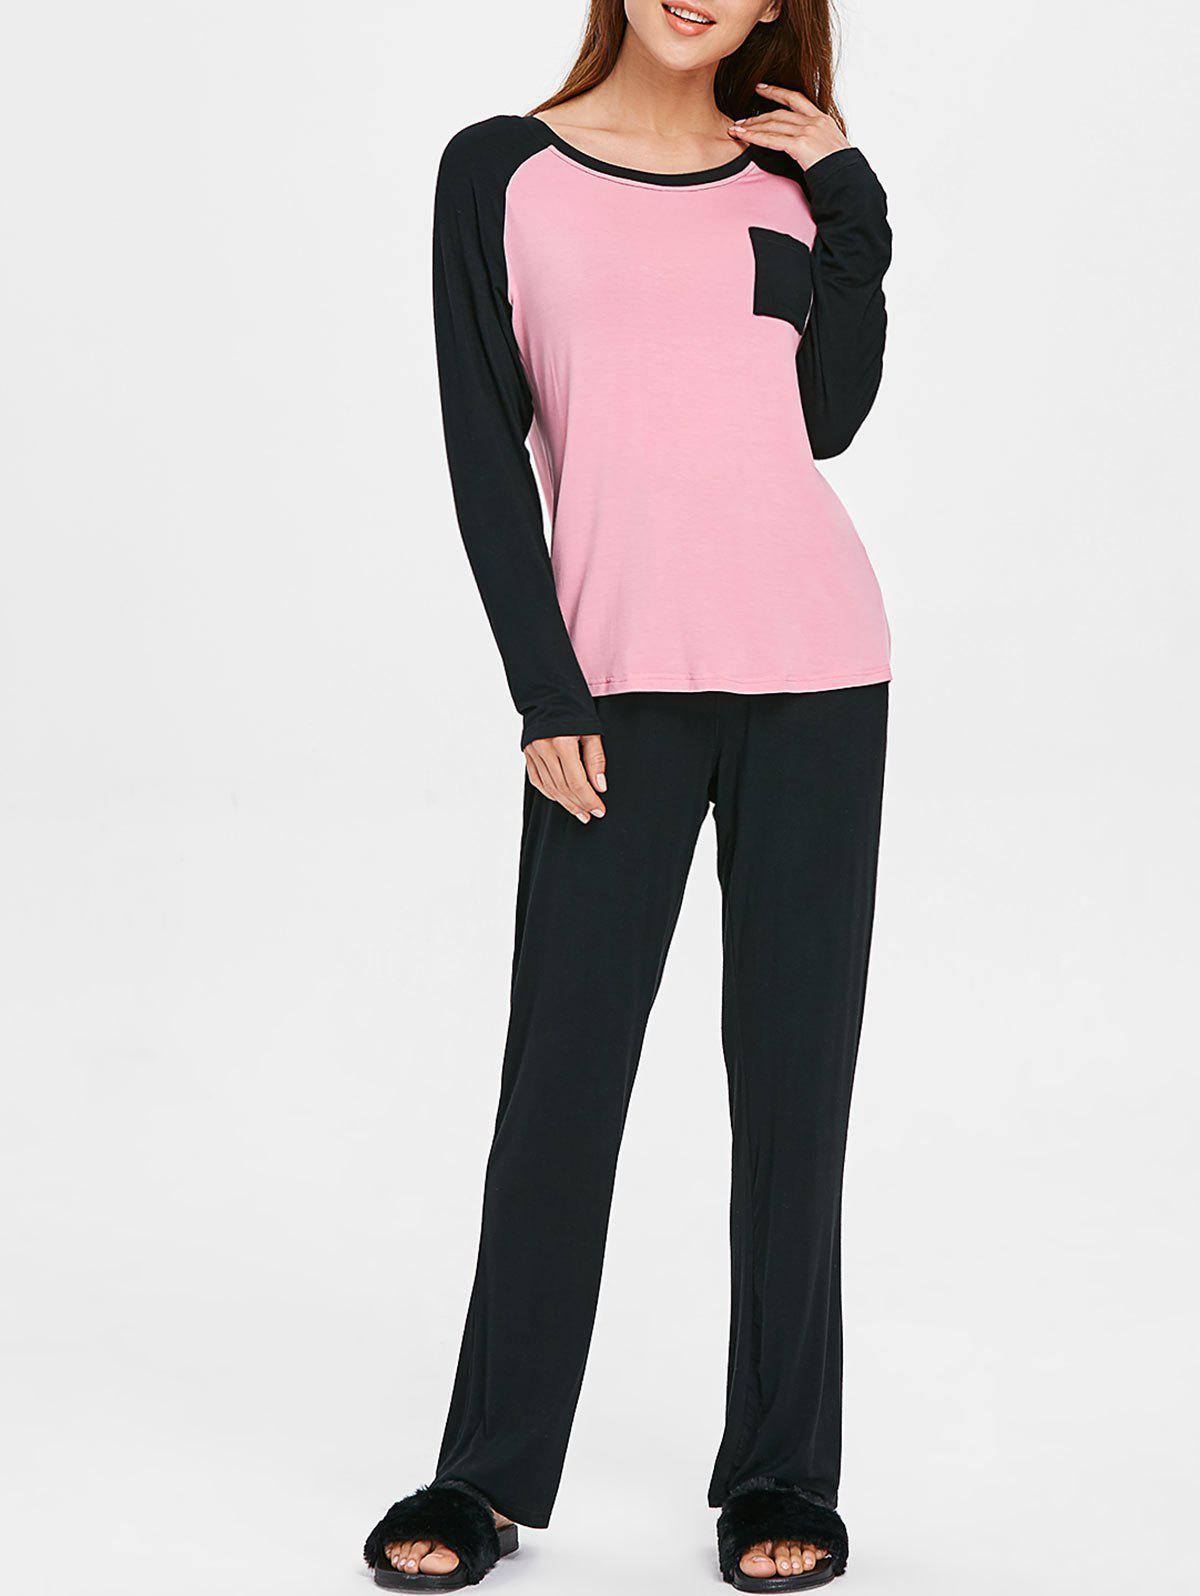 Outfits Two Tone Long Sleeves Sleepwear Set with Pocket